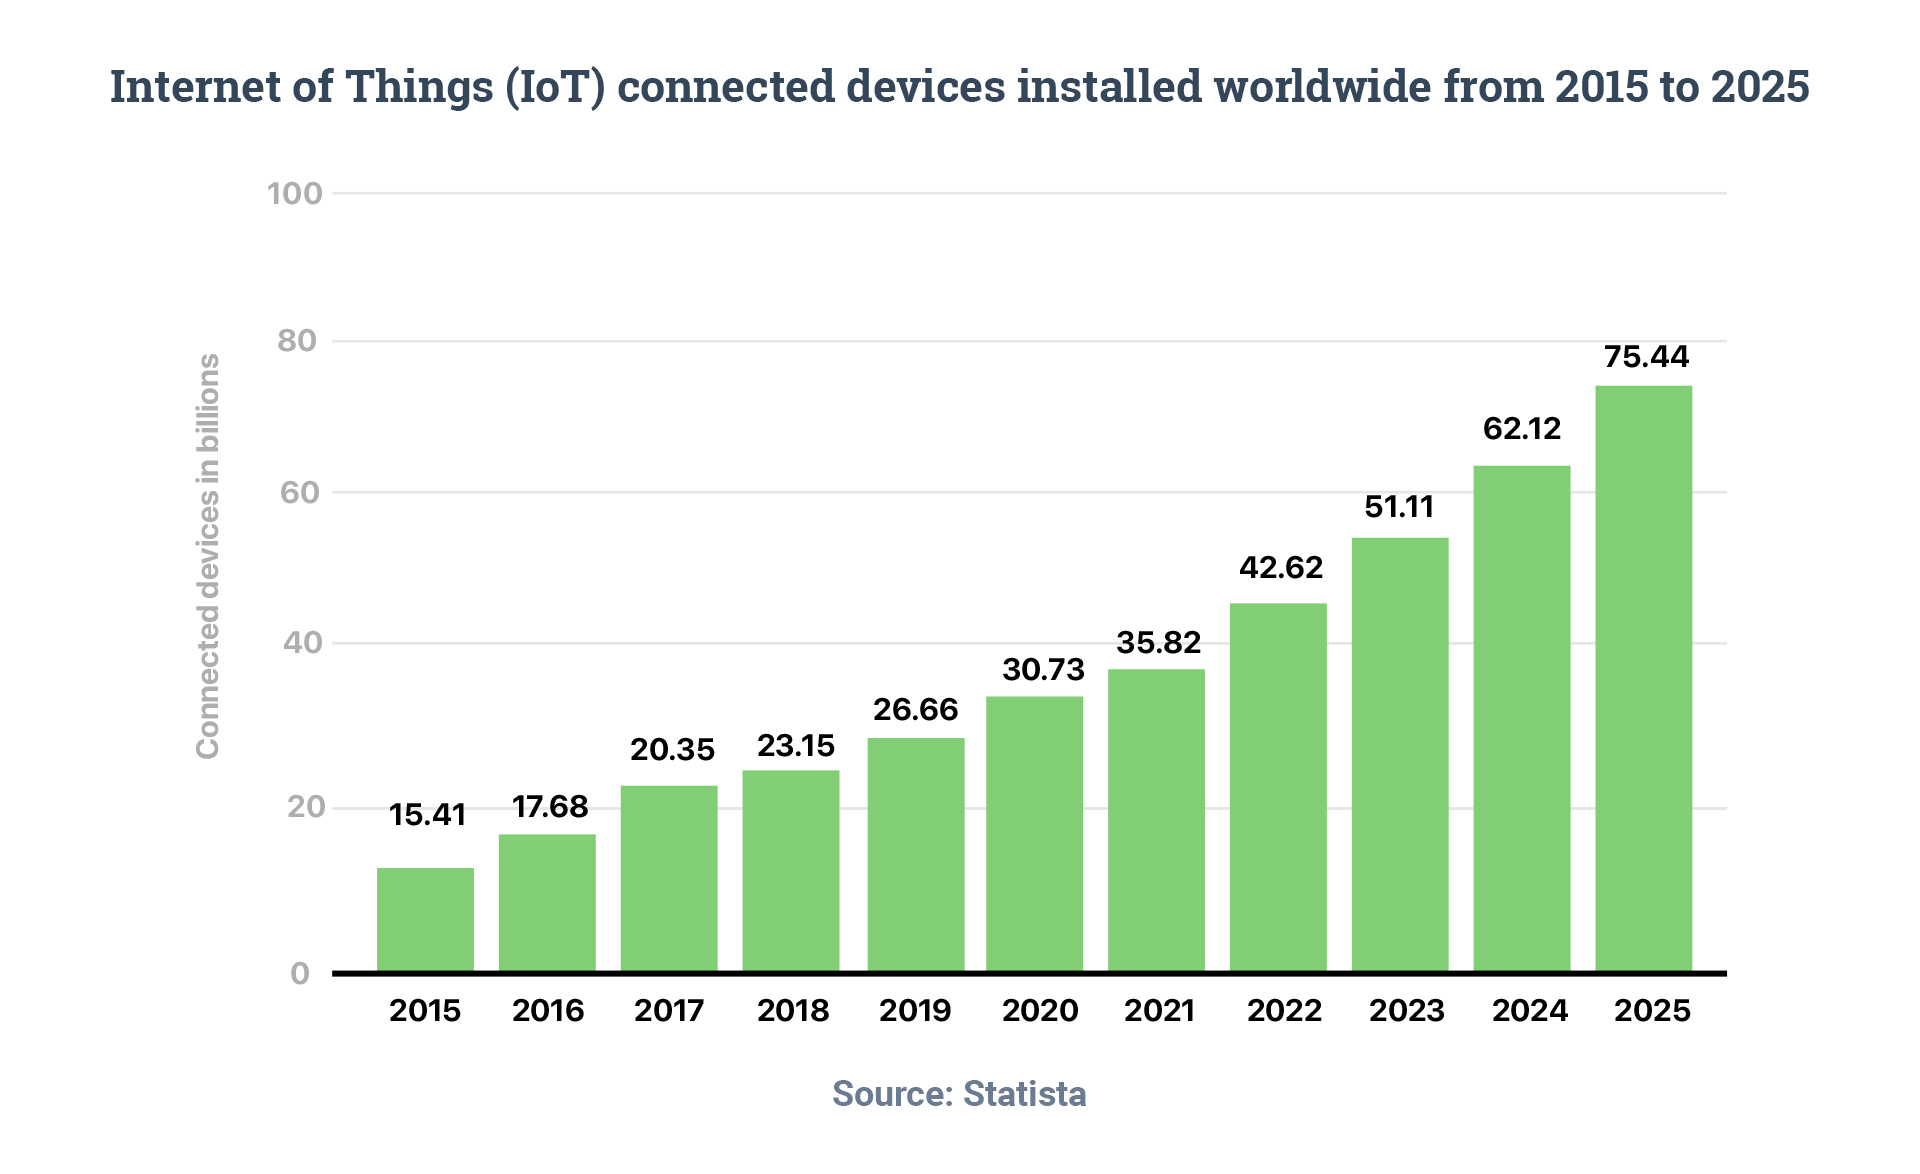 Internet of Things (IoT) connected devices installed worldwide from 2015 to 2025